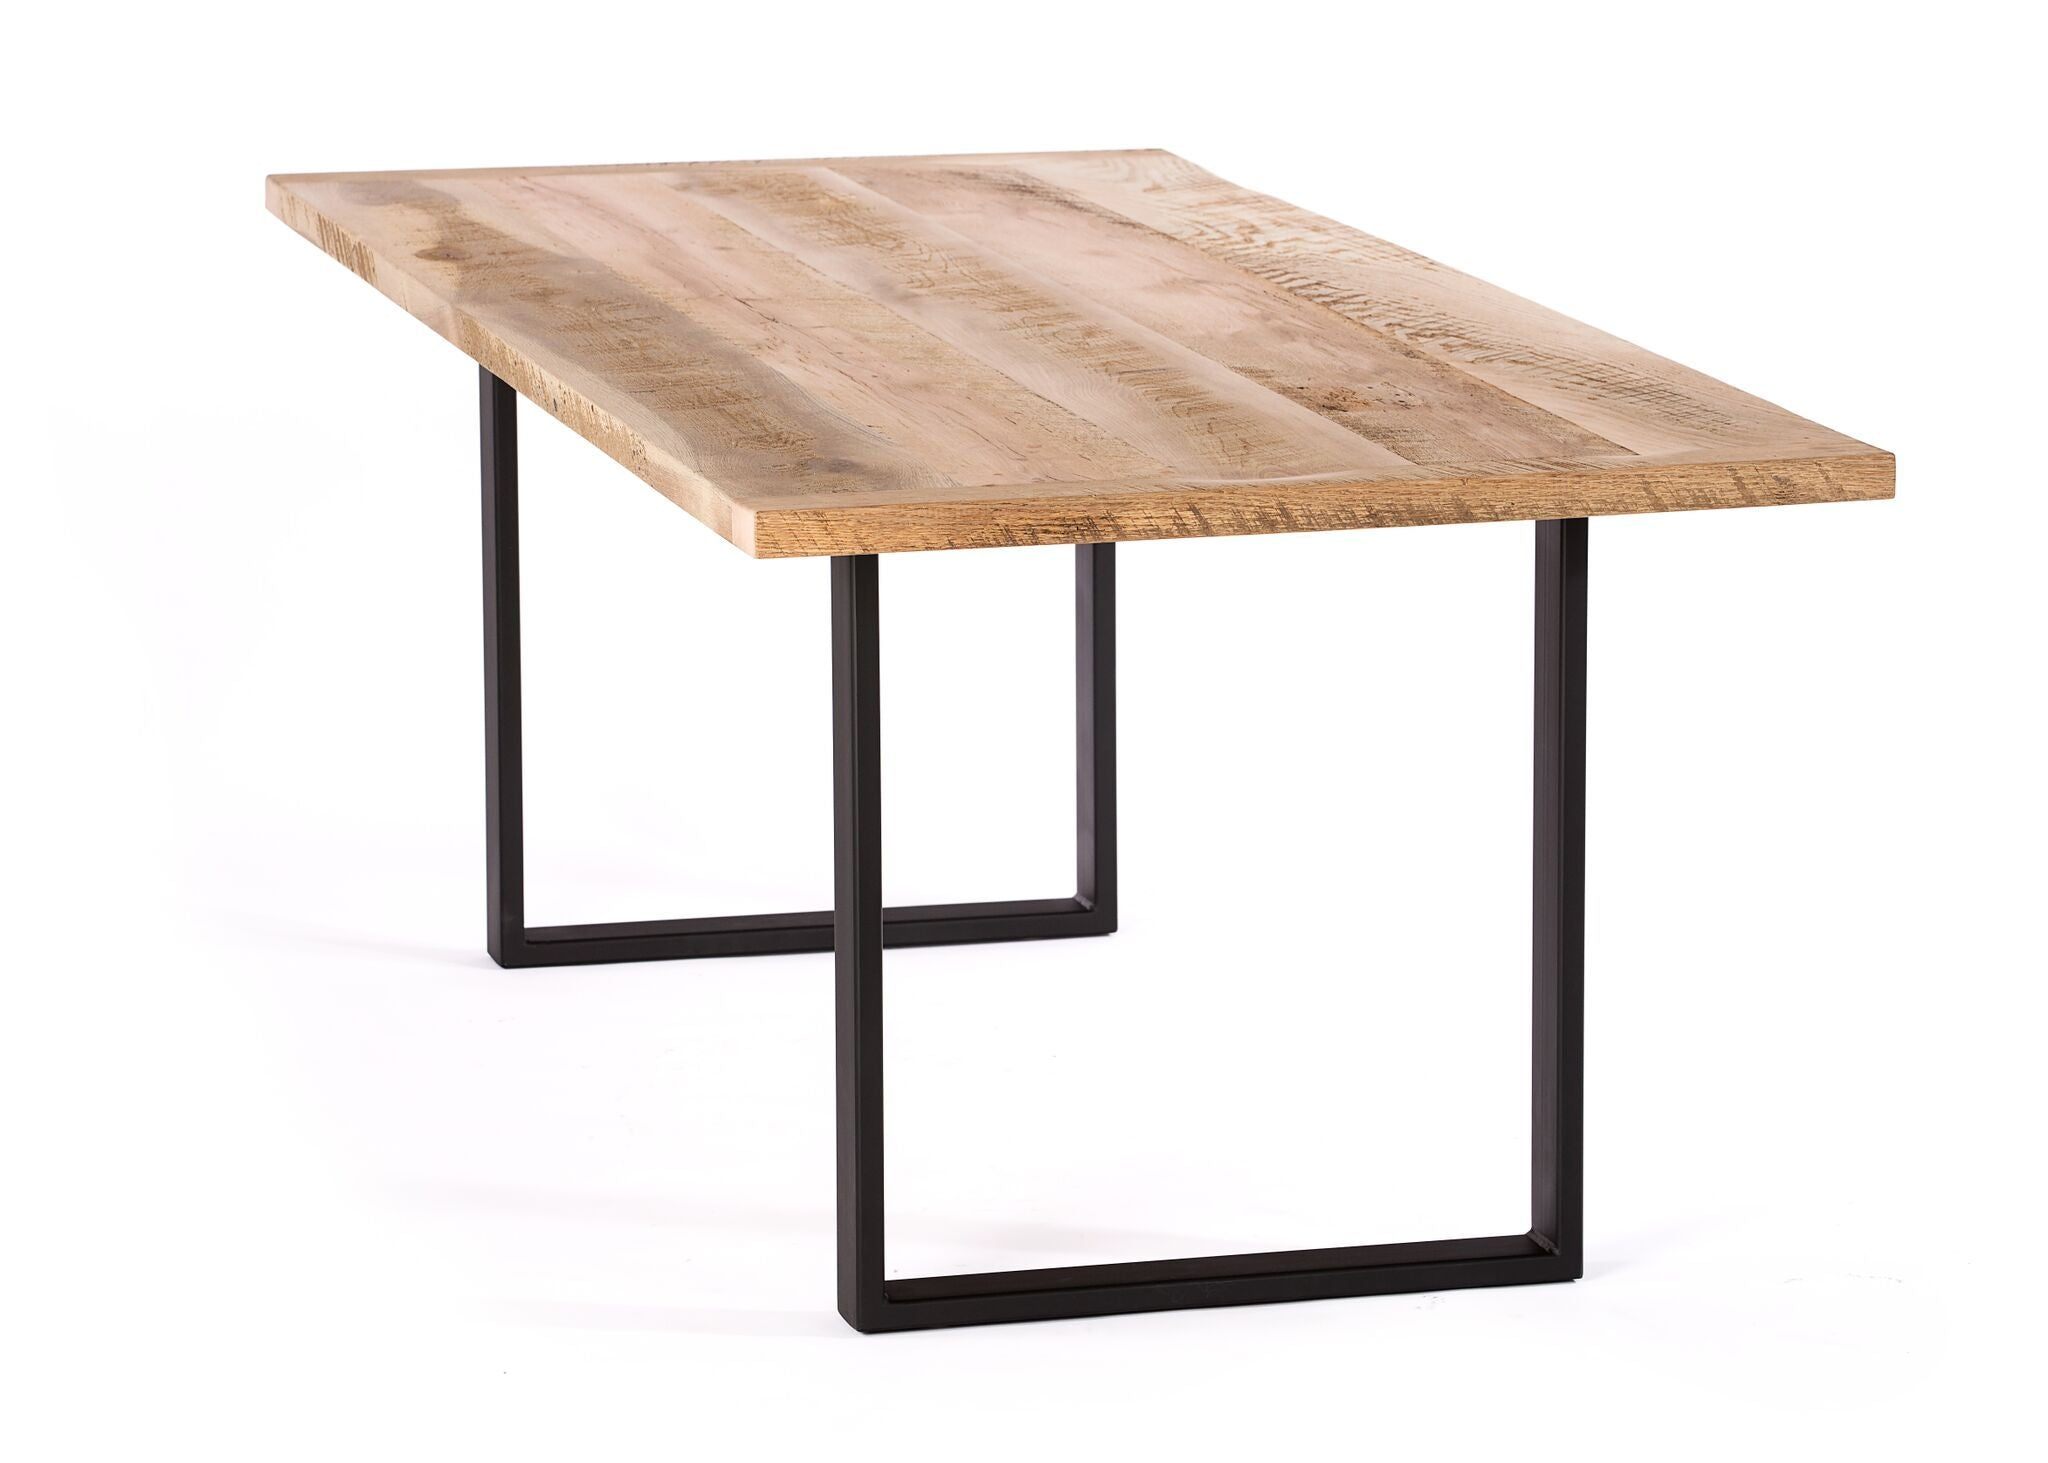 "Rectangular Wood Tables | Maddox Table | Ash | Ash | CUSTOM SIZE L 60 W 30 H 30 | 1.75"" kingston-krafts-zinc-tables."